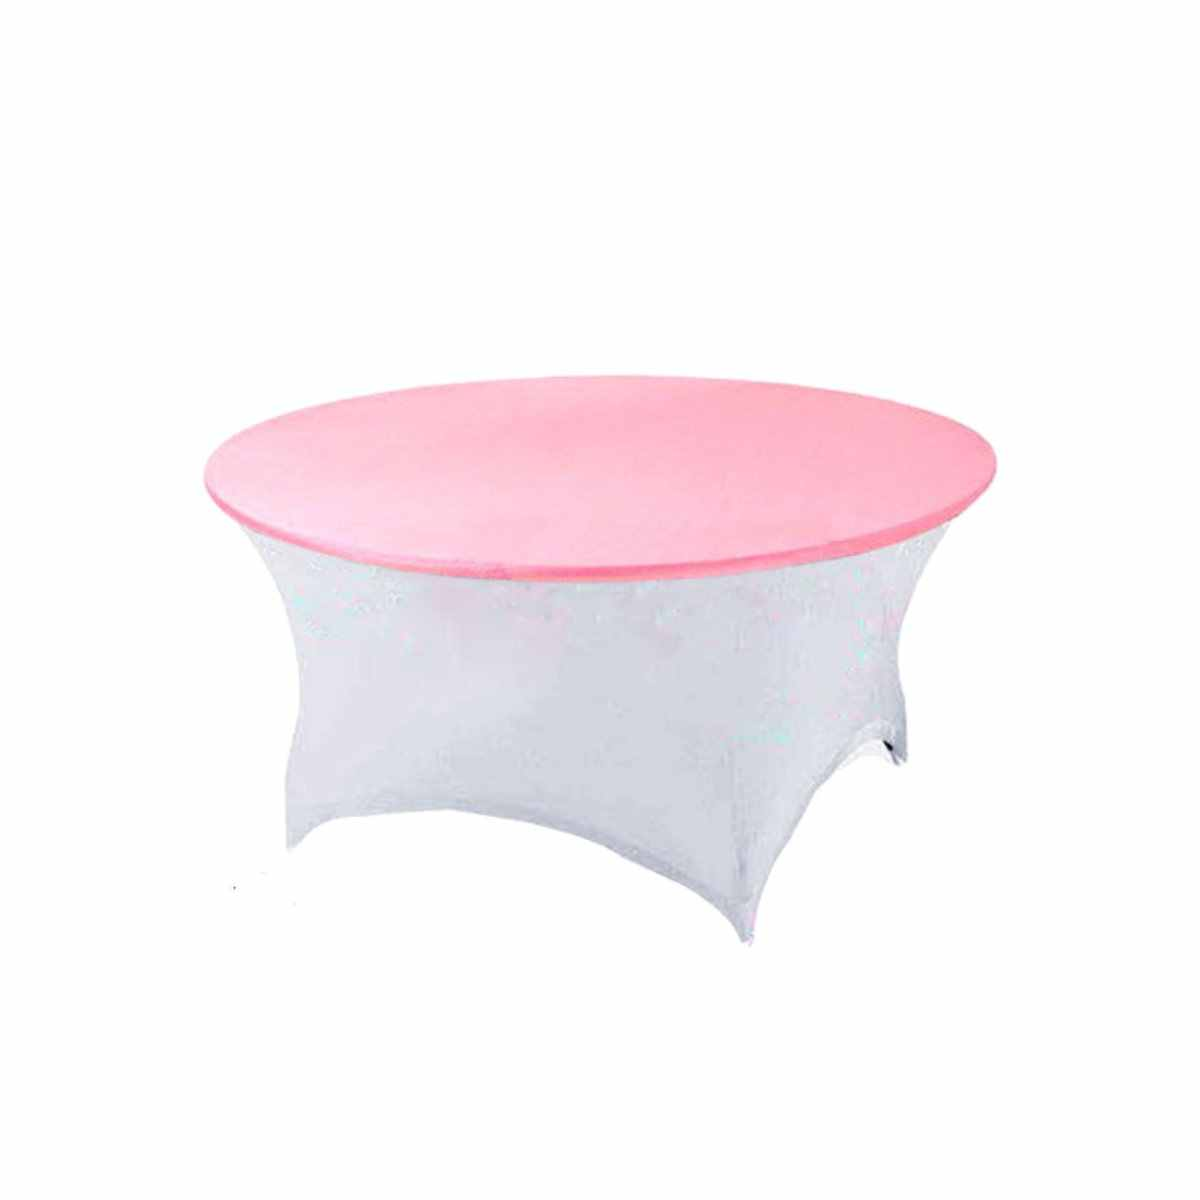 Stretch Round Table Cloth Waterproof Dining Table Cover Tablecloth Kitchen Home